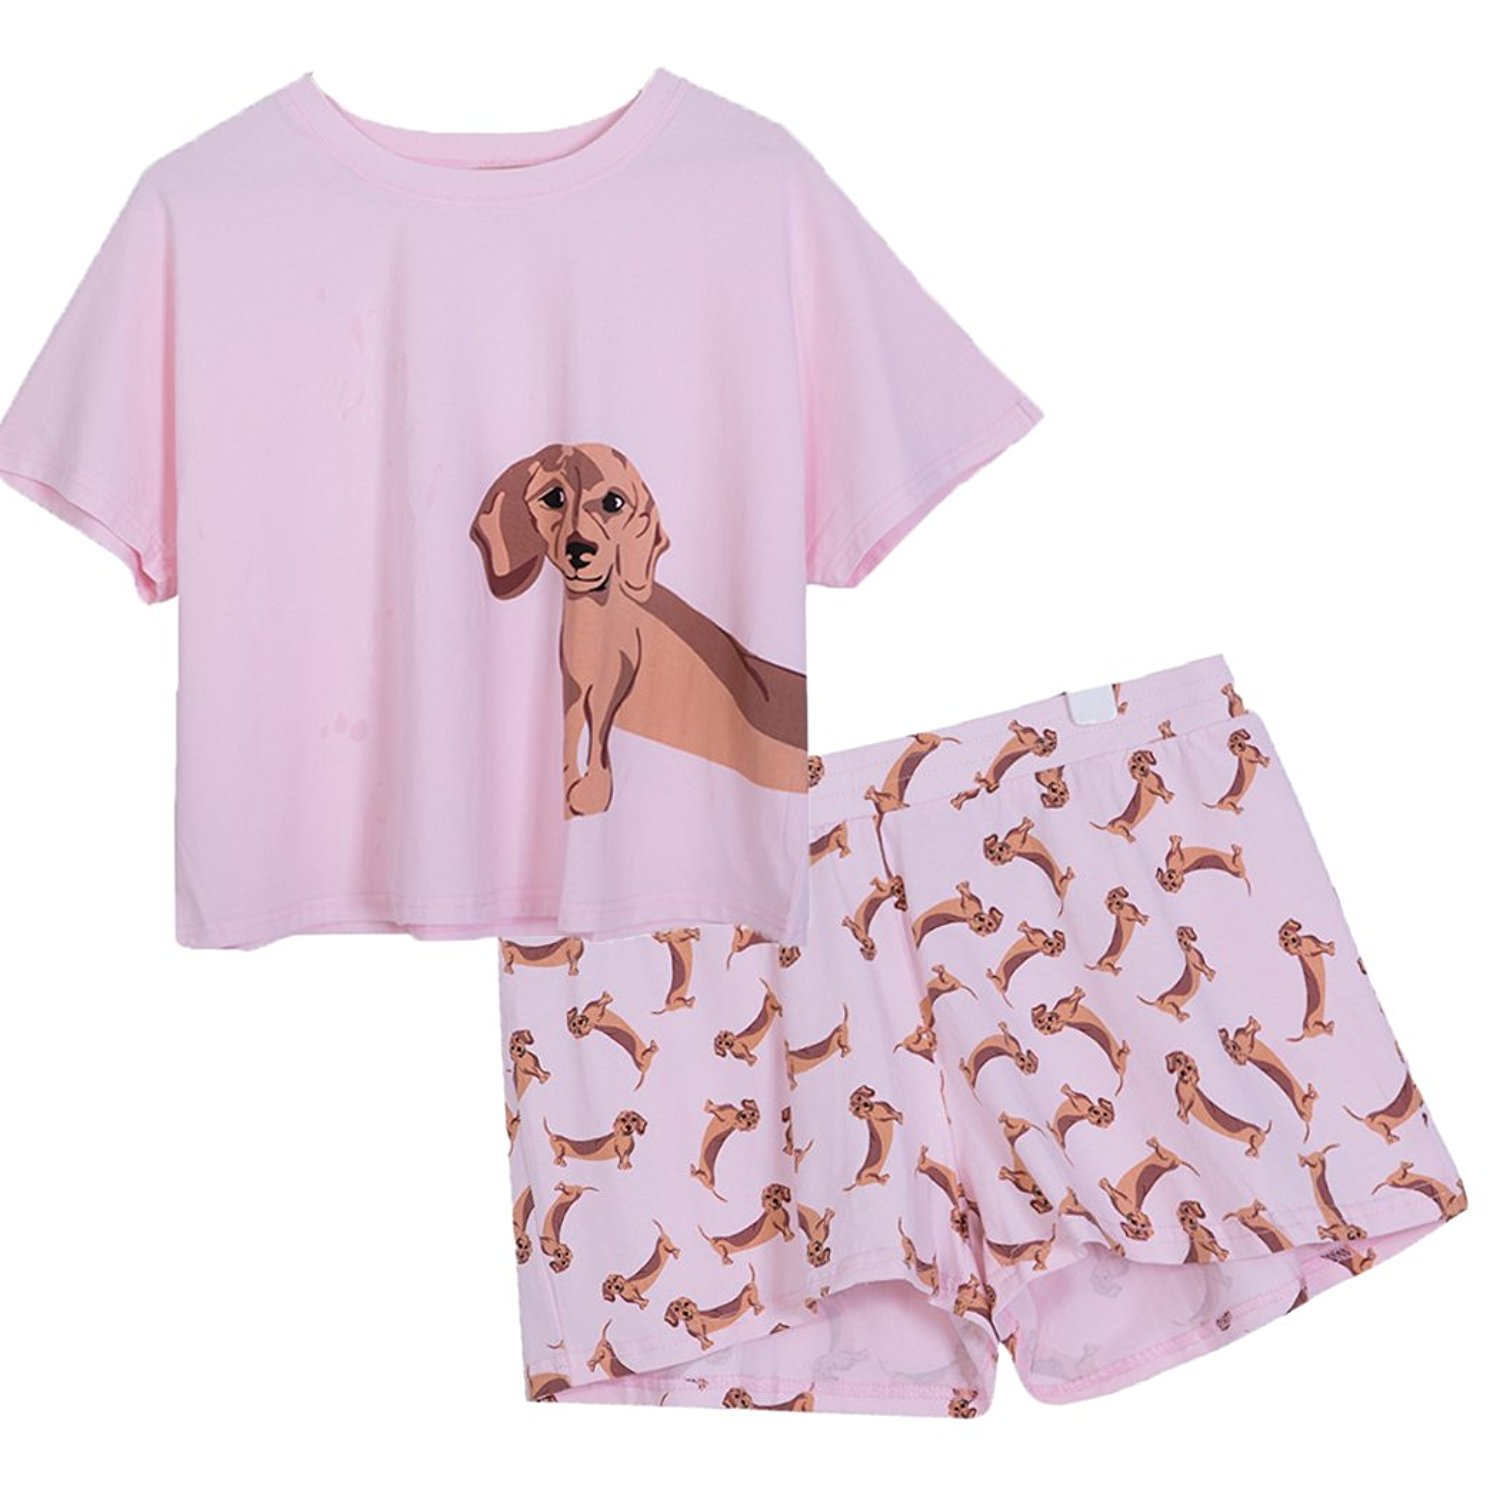 a75d3b3aab Get Quotations · Fashion Culture Junior s Dachshund Pajama Lounge Shorts    Crop Top Set